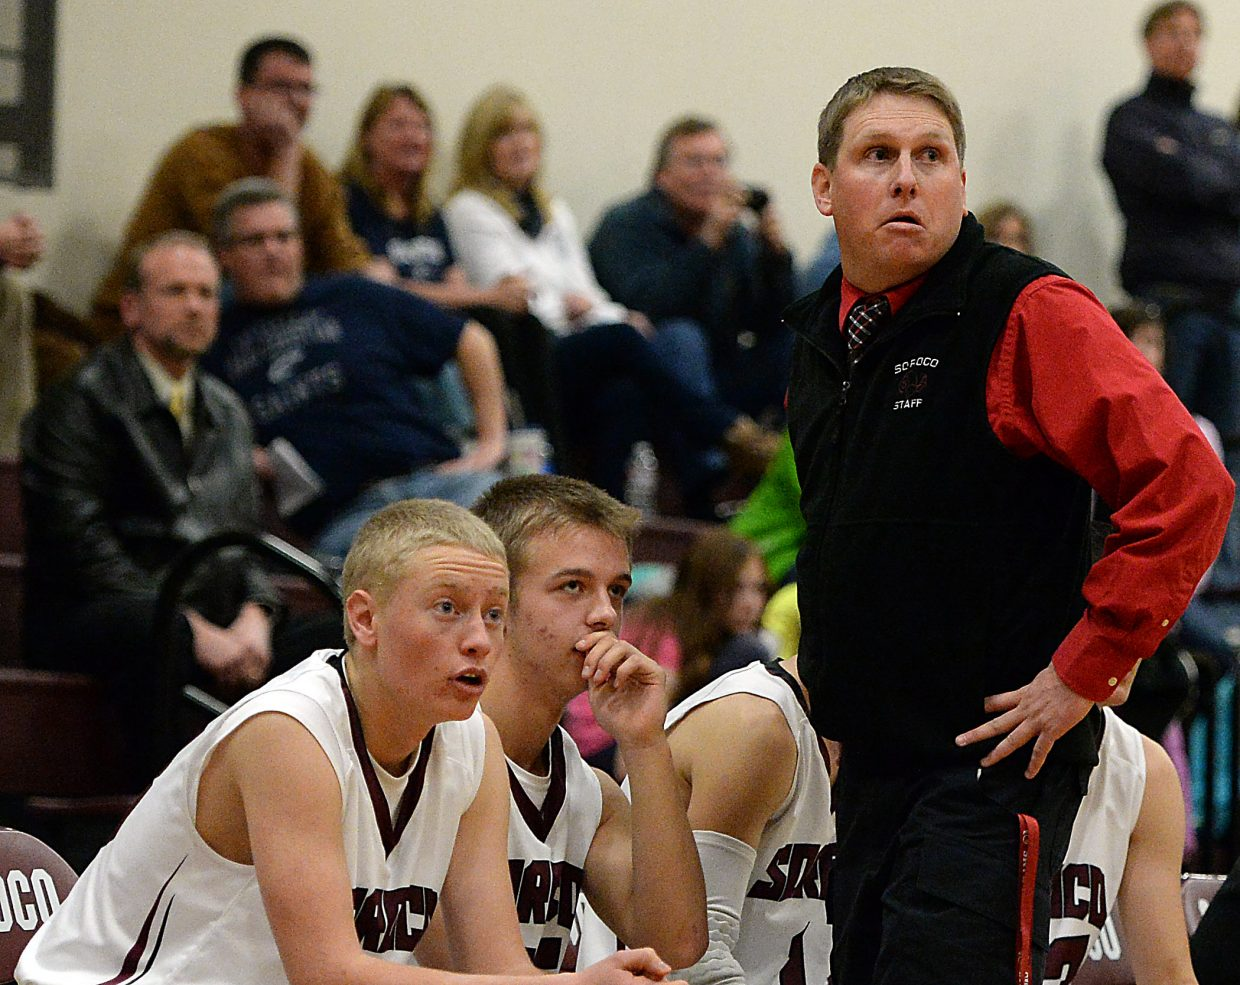 Soroco coach Jake Eskridge tried not to look at important late-game free throws Wednesday, but he couldn't help himself.